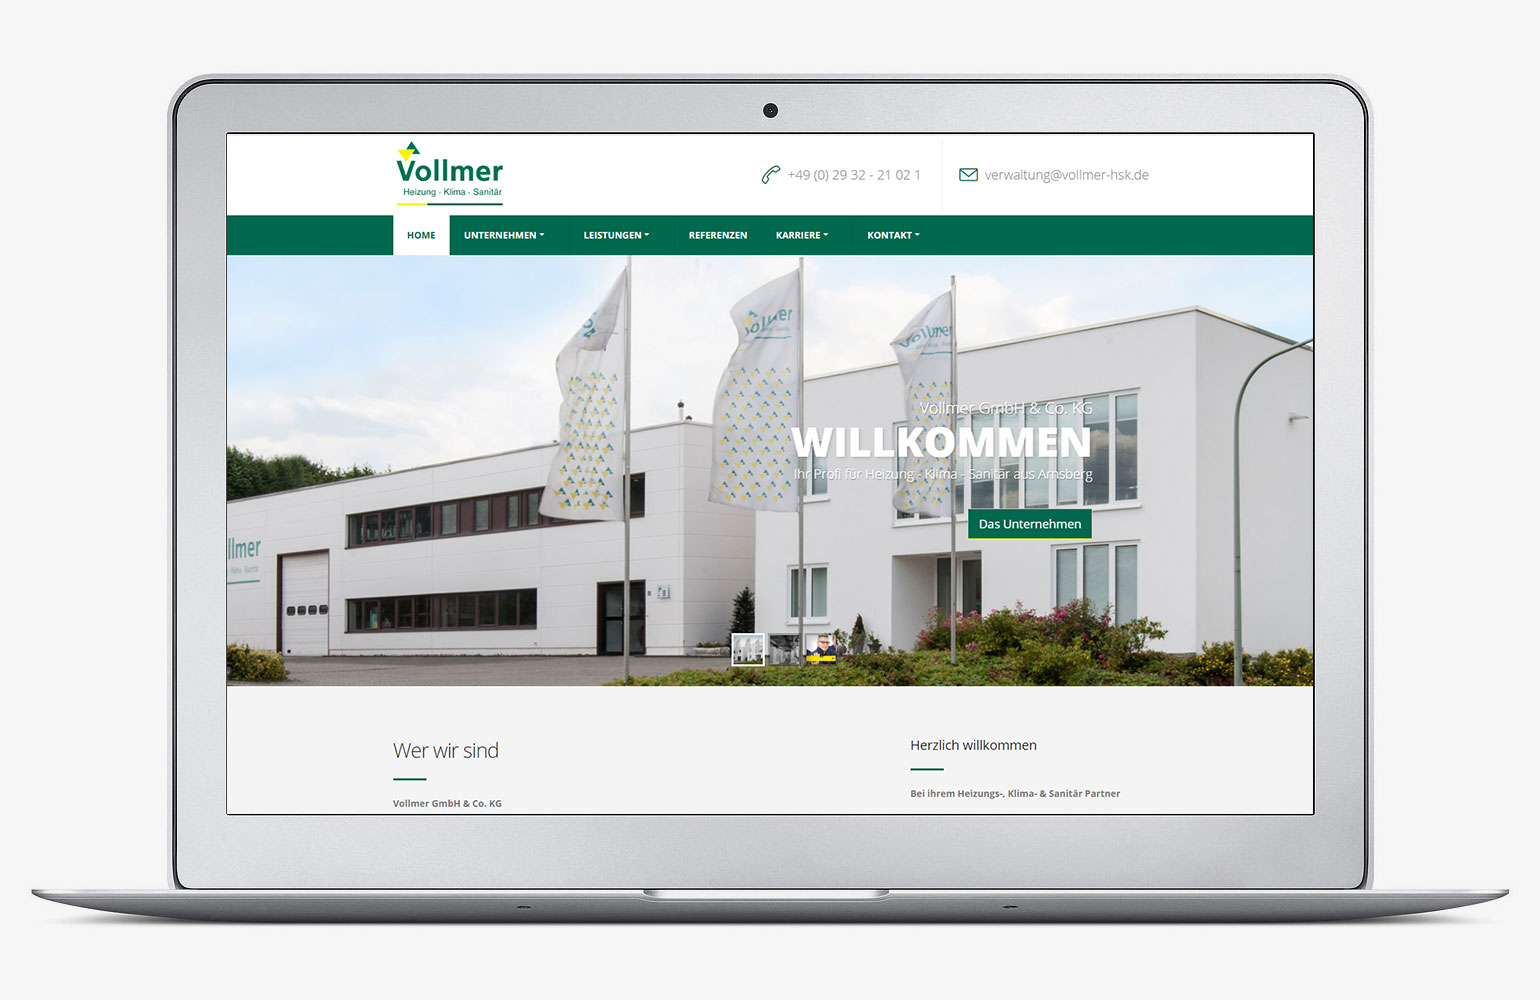 Referenz - Vollmer GmbH & Co. KG